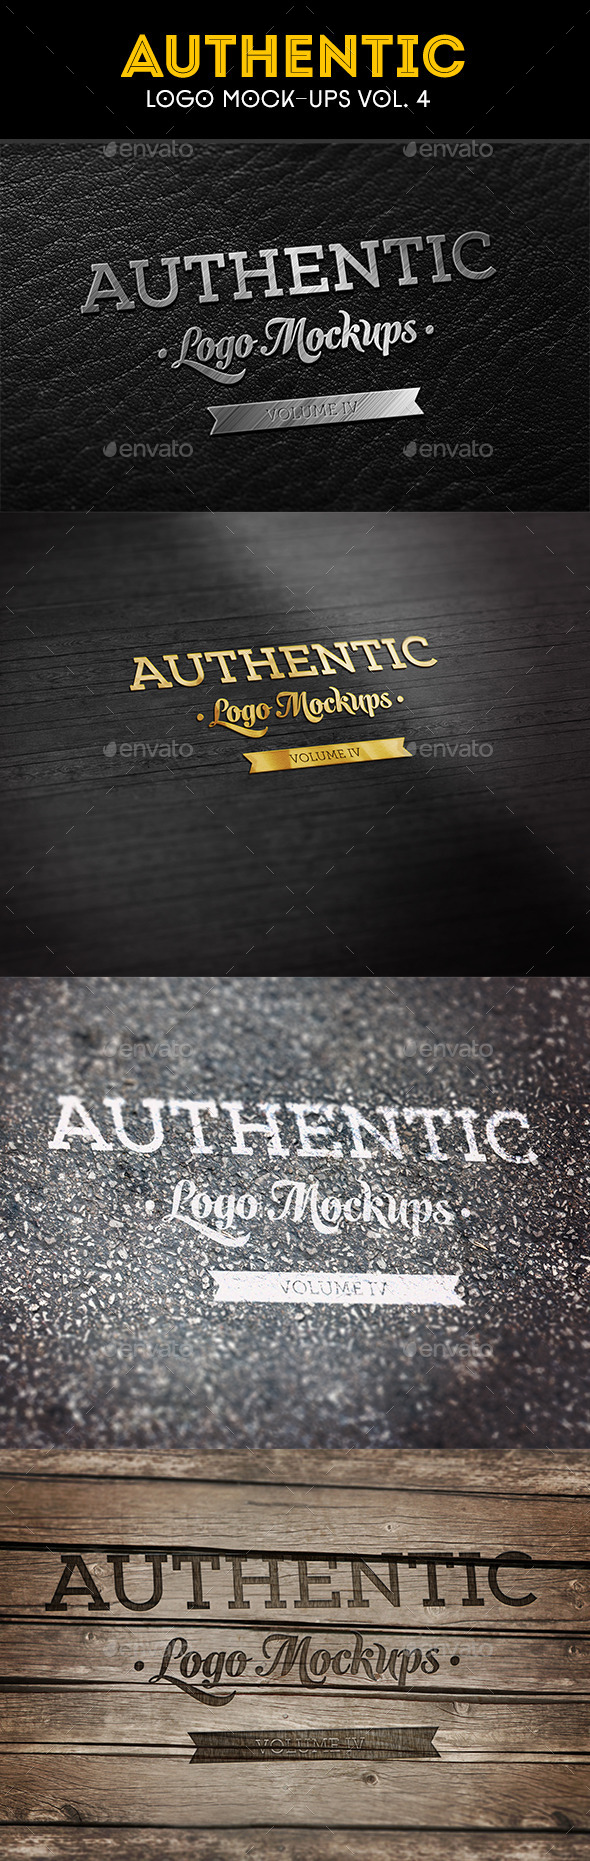 GraphicRiver Authentic Logo Mockups Vol 4 10927671